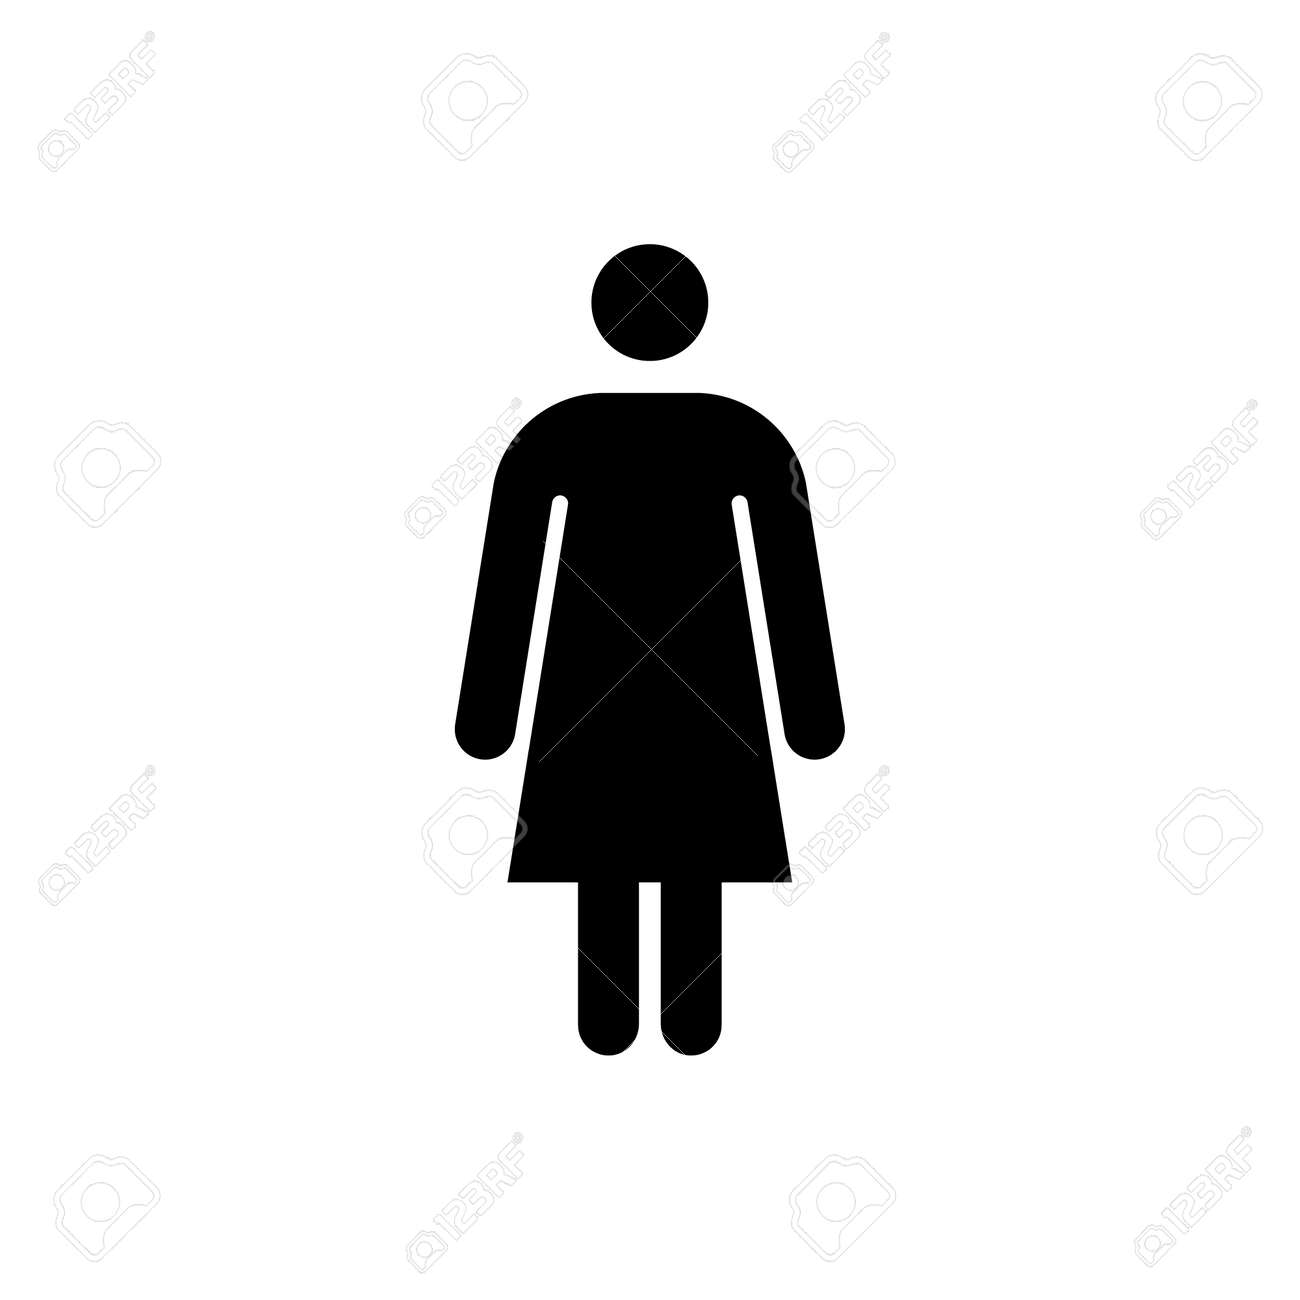 Woman Icon Female Sign For Restroom Girl Wc Pictogram For Bathroom Royalty Free Cliparts Vectors And Stock Illustration Image 162454315